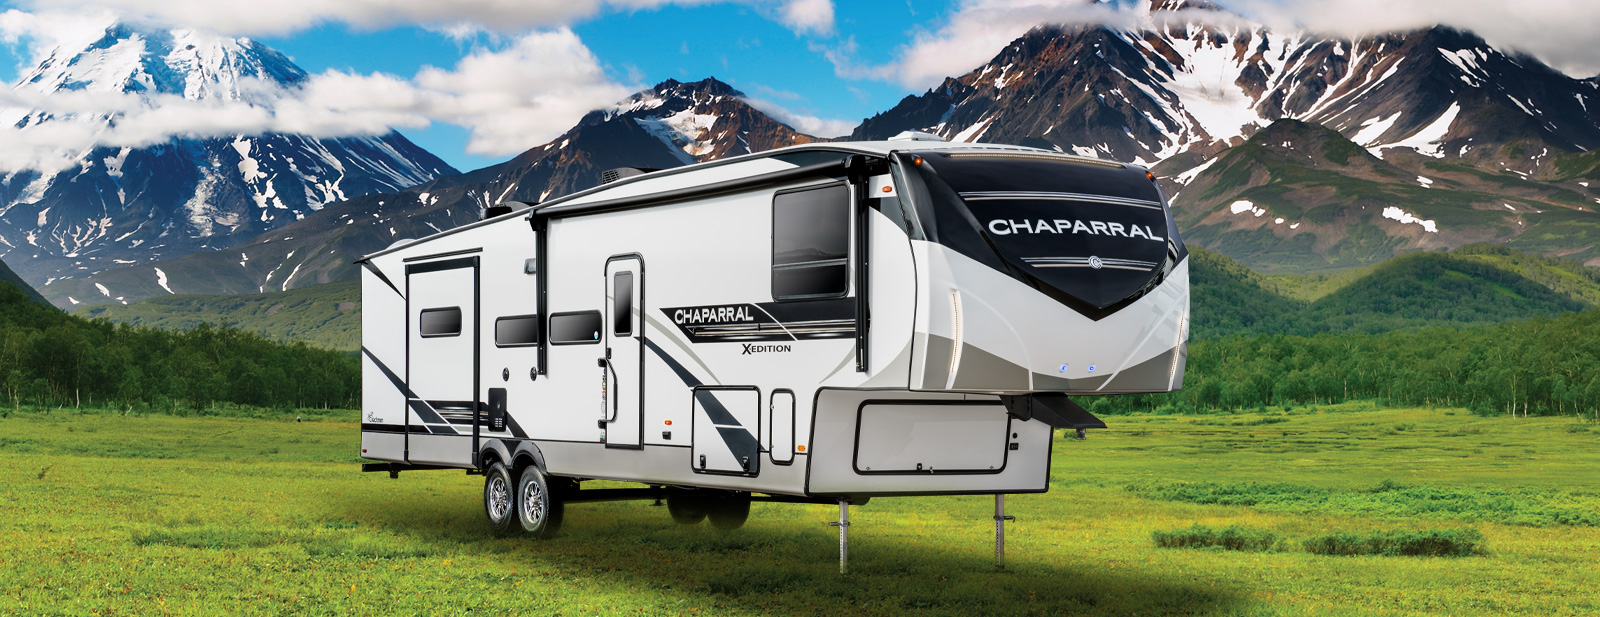 Chaparral X Edition RVs